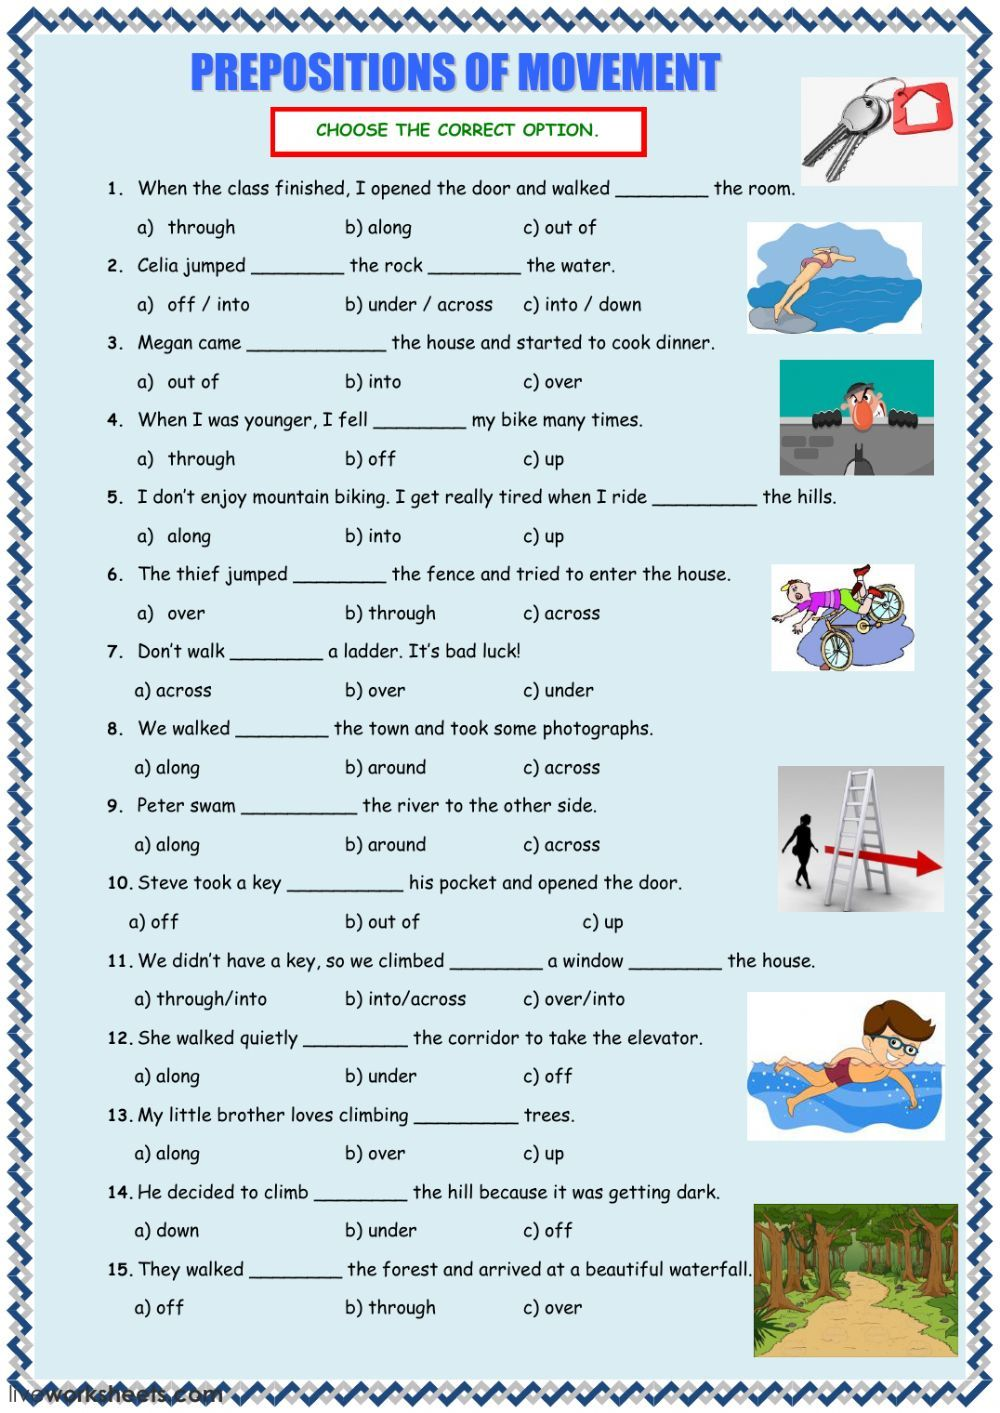 Prepositions of movement interactive and downloadable worksheet. You ...